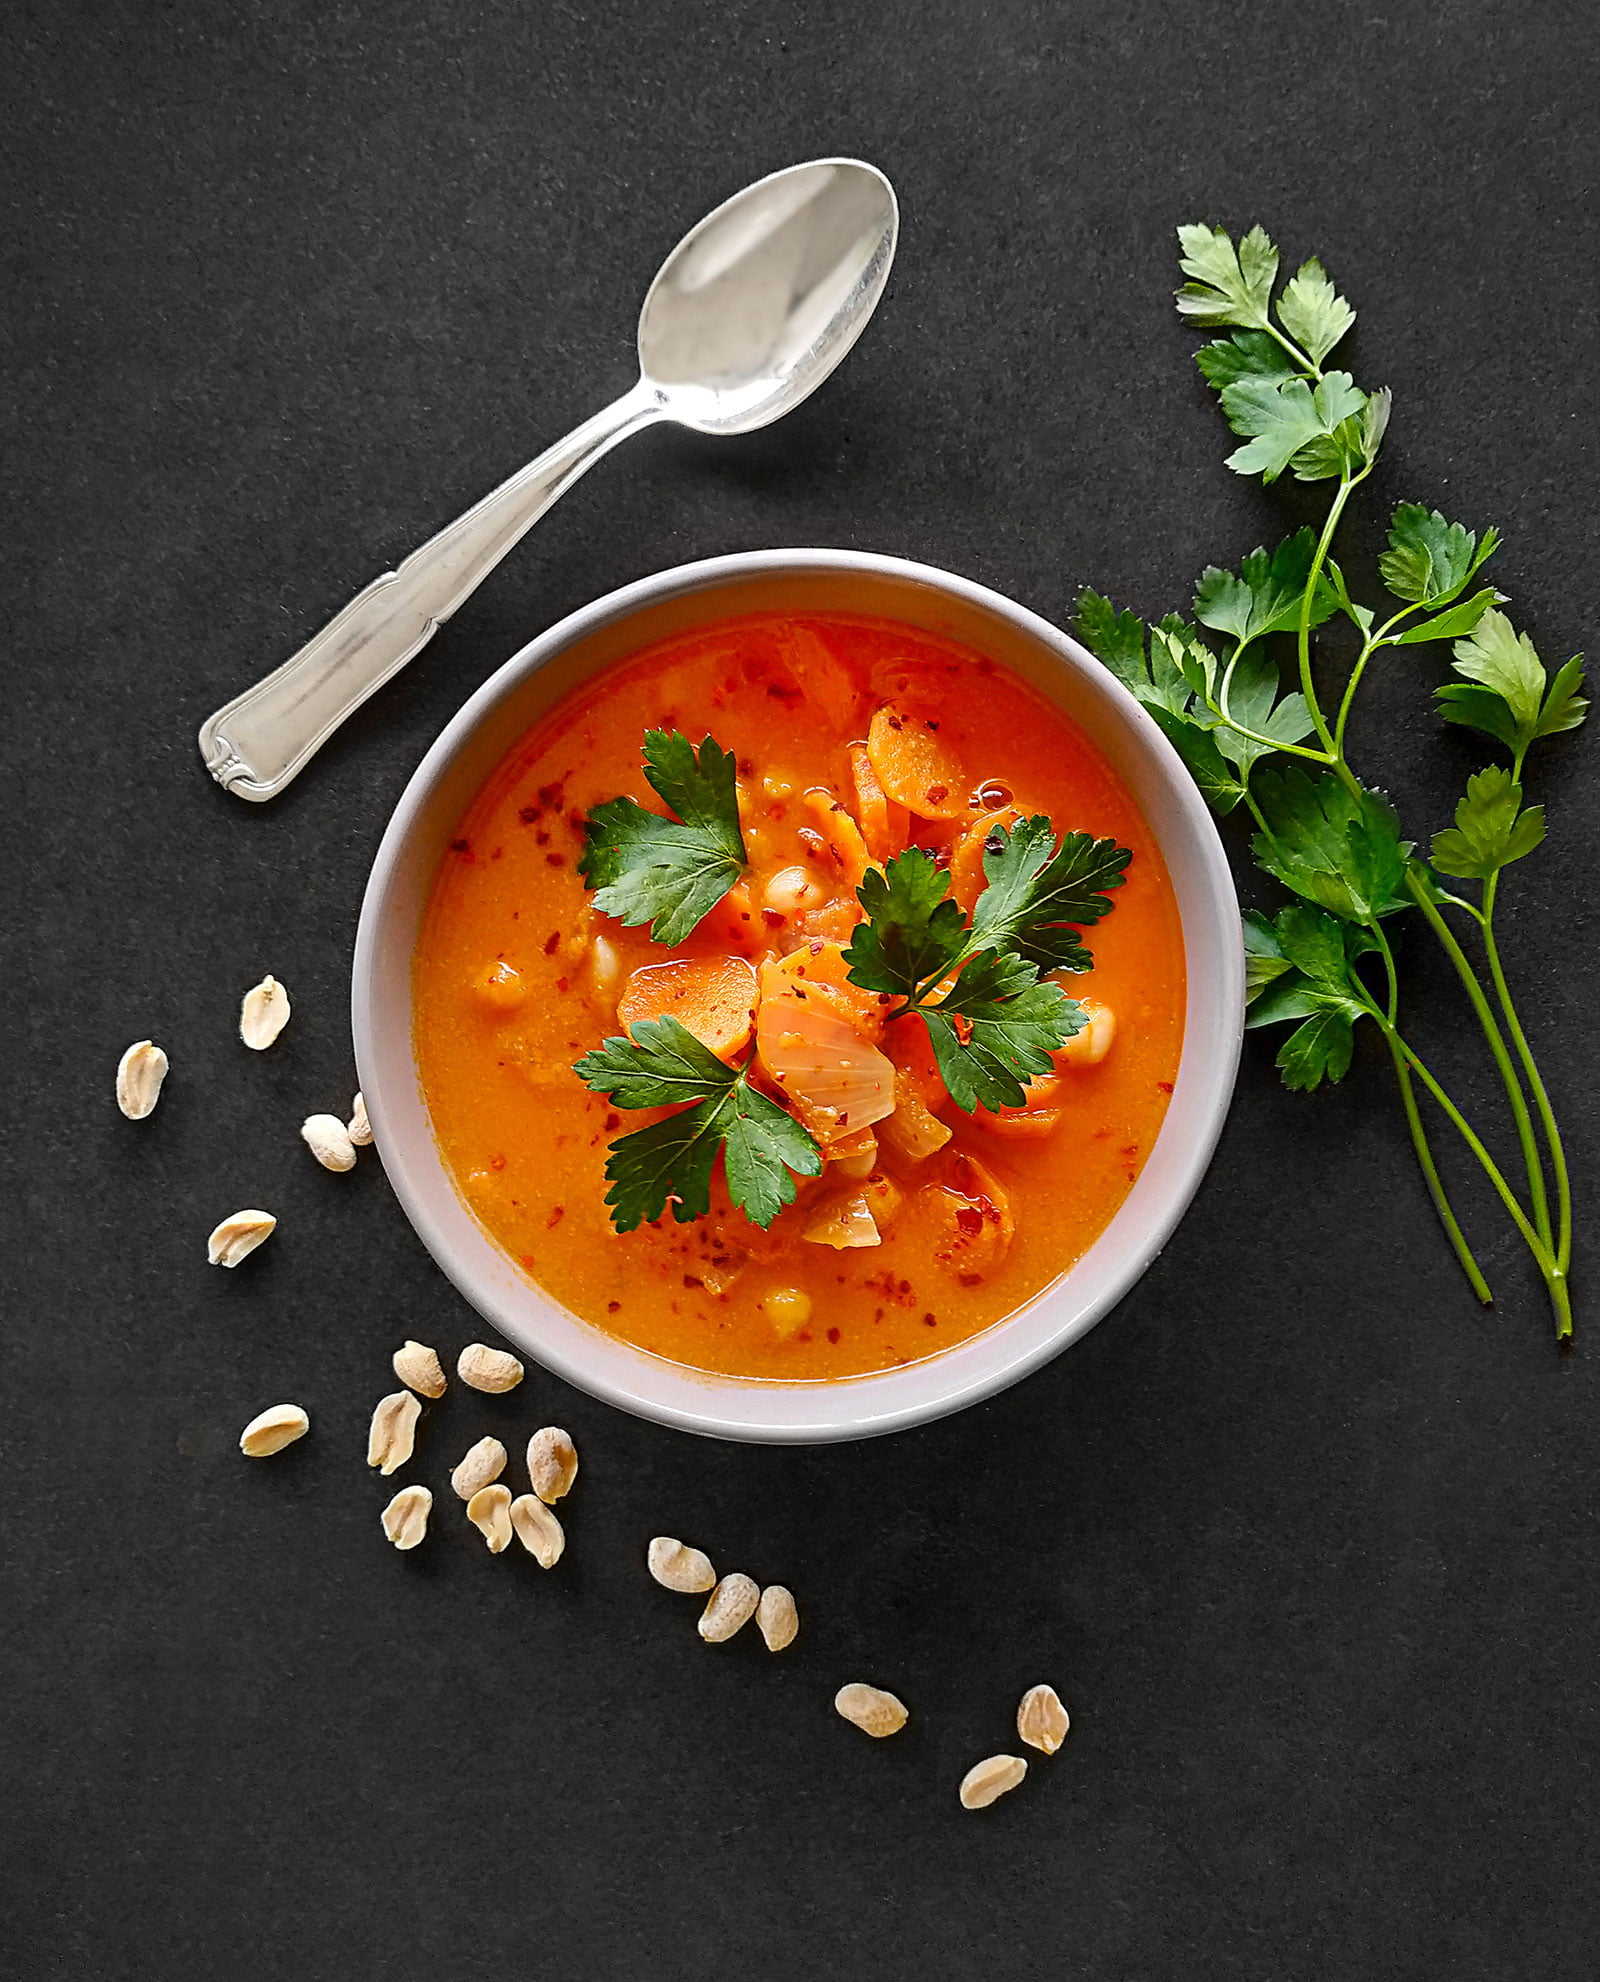 comfy-peanut-carrot-and-chickpea-soup